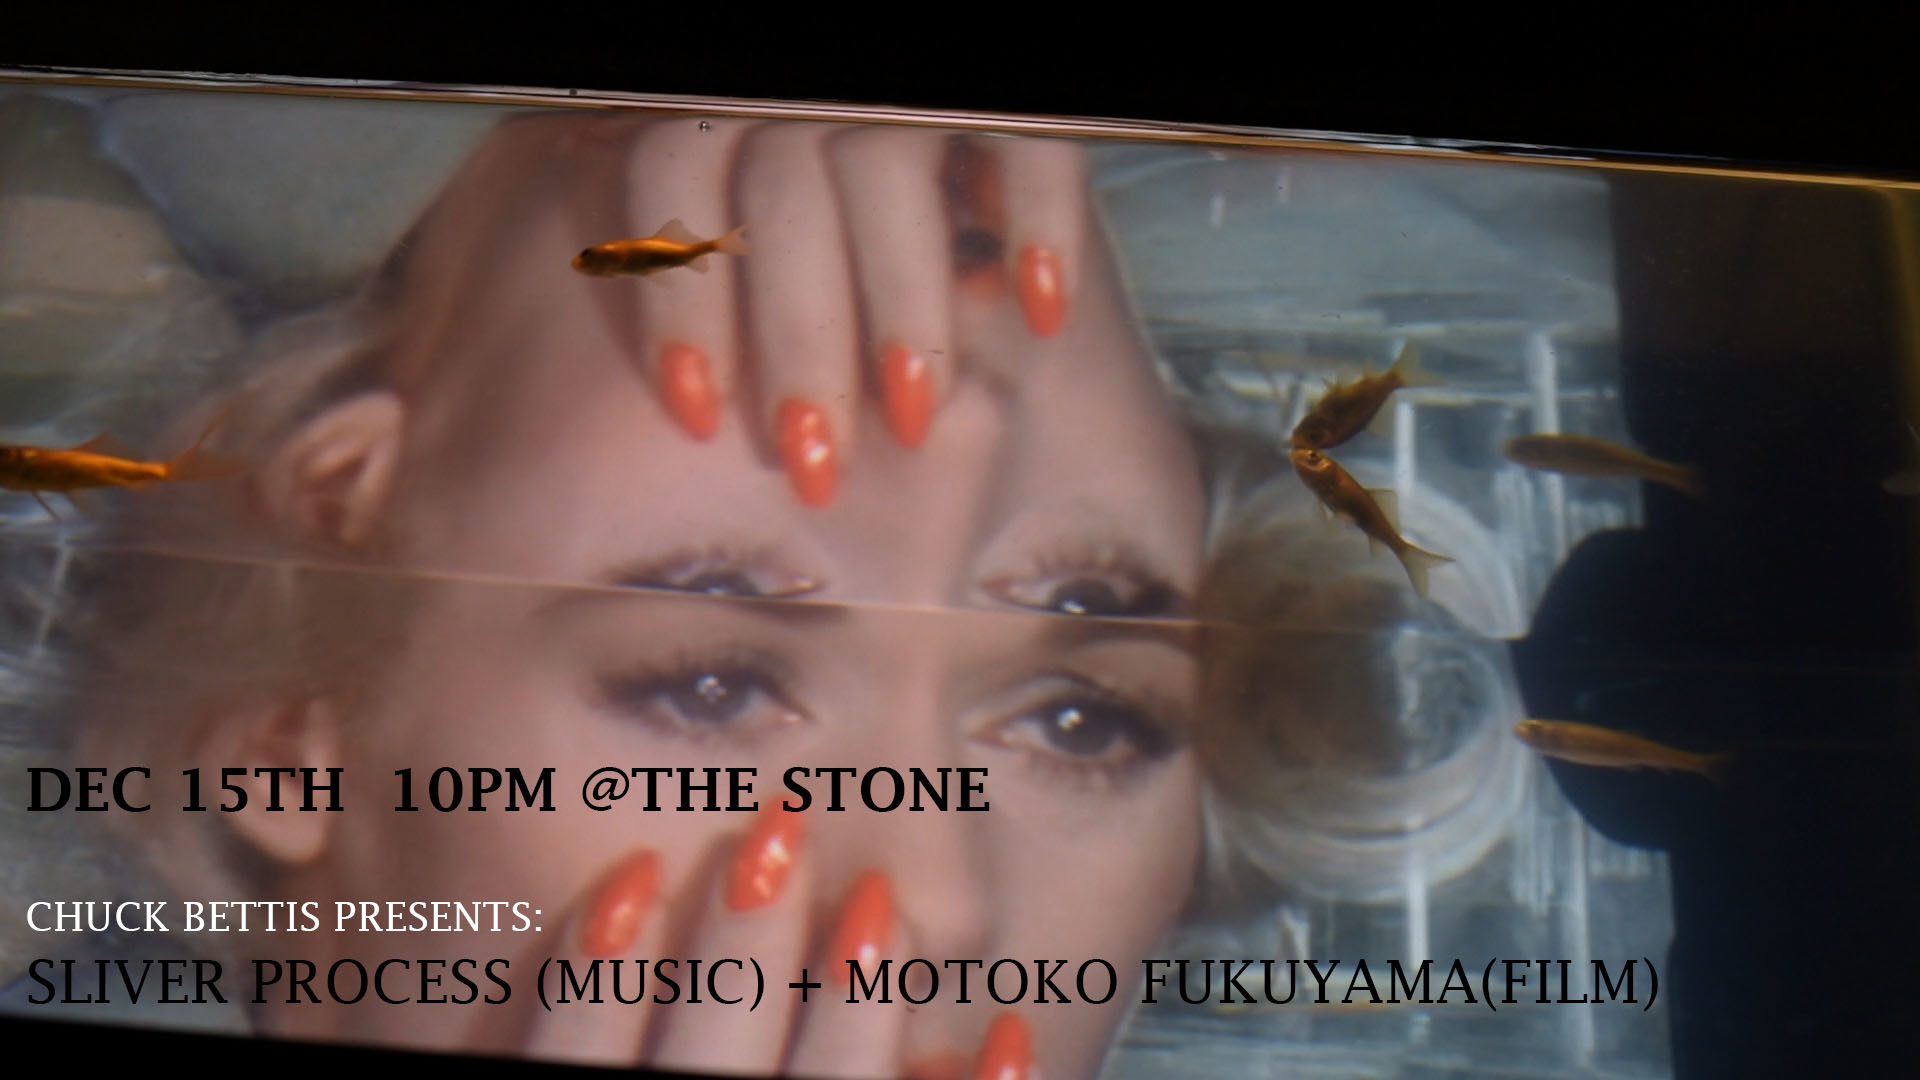 Motoko Fukuyama (film) + Silver Process (live soundtrack) at The Stone